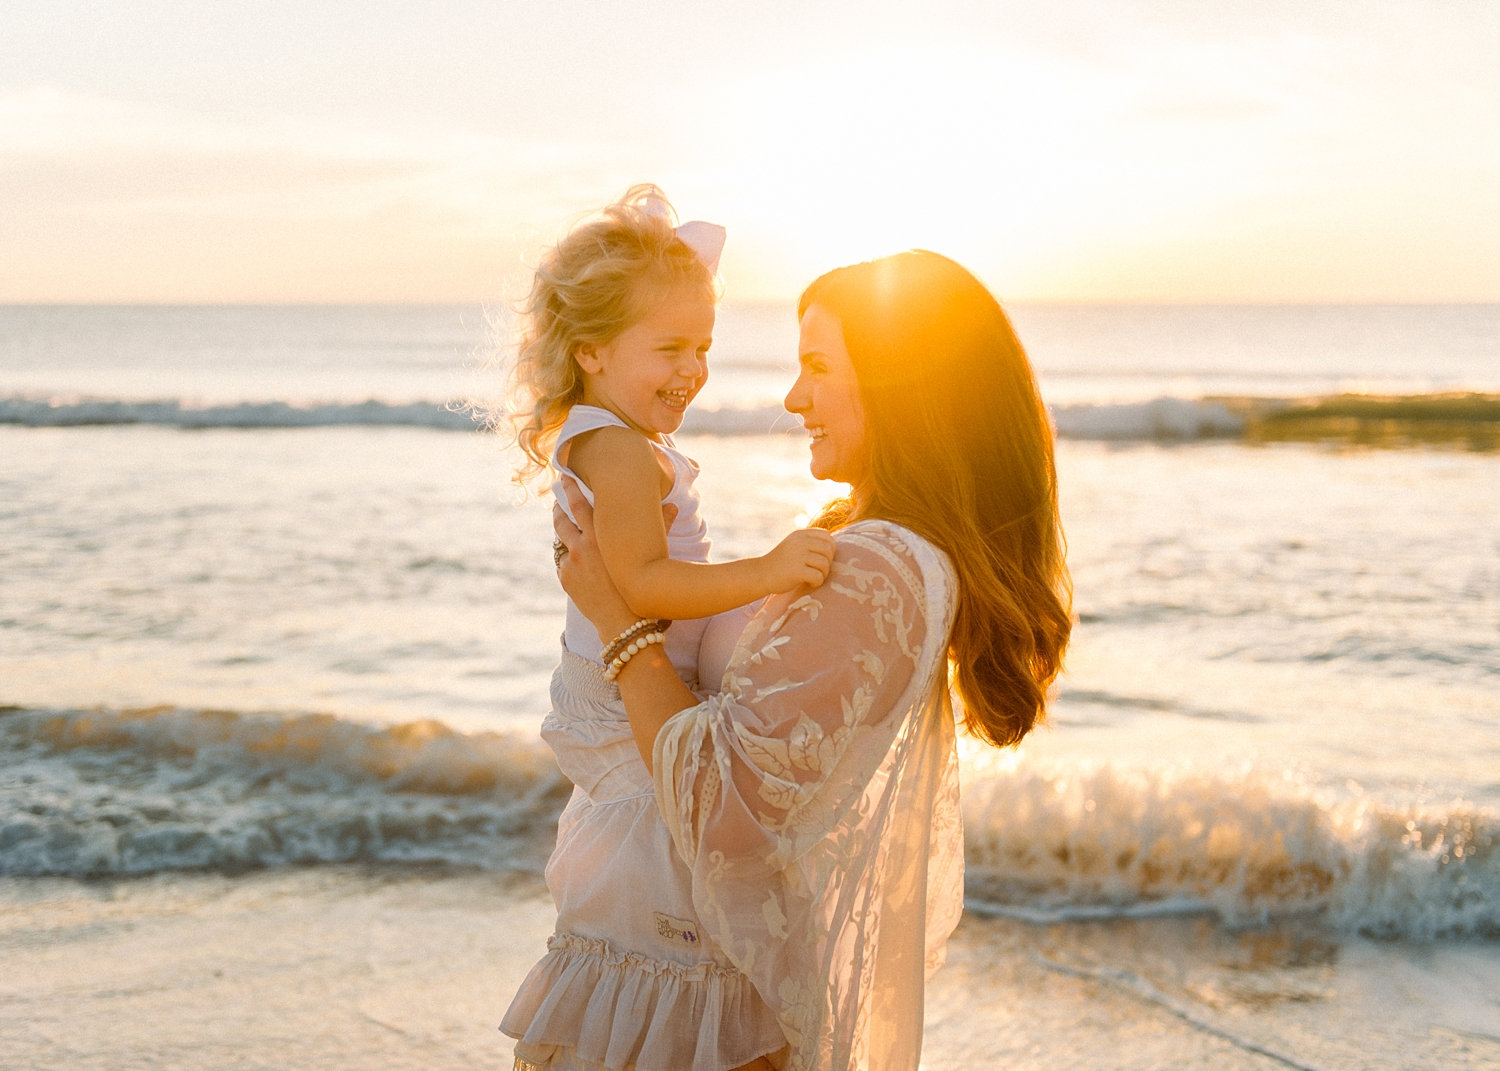 mom holding her daughter and smiling, the sun is rising over the Atlantic ocean